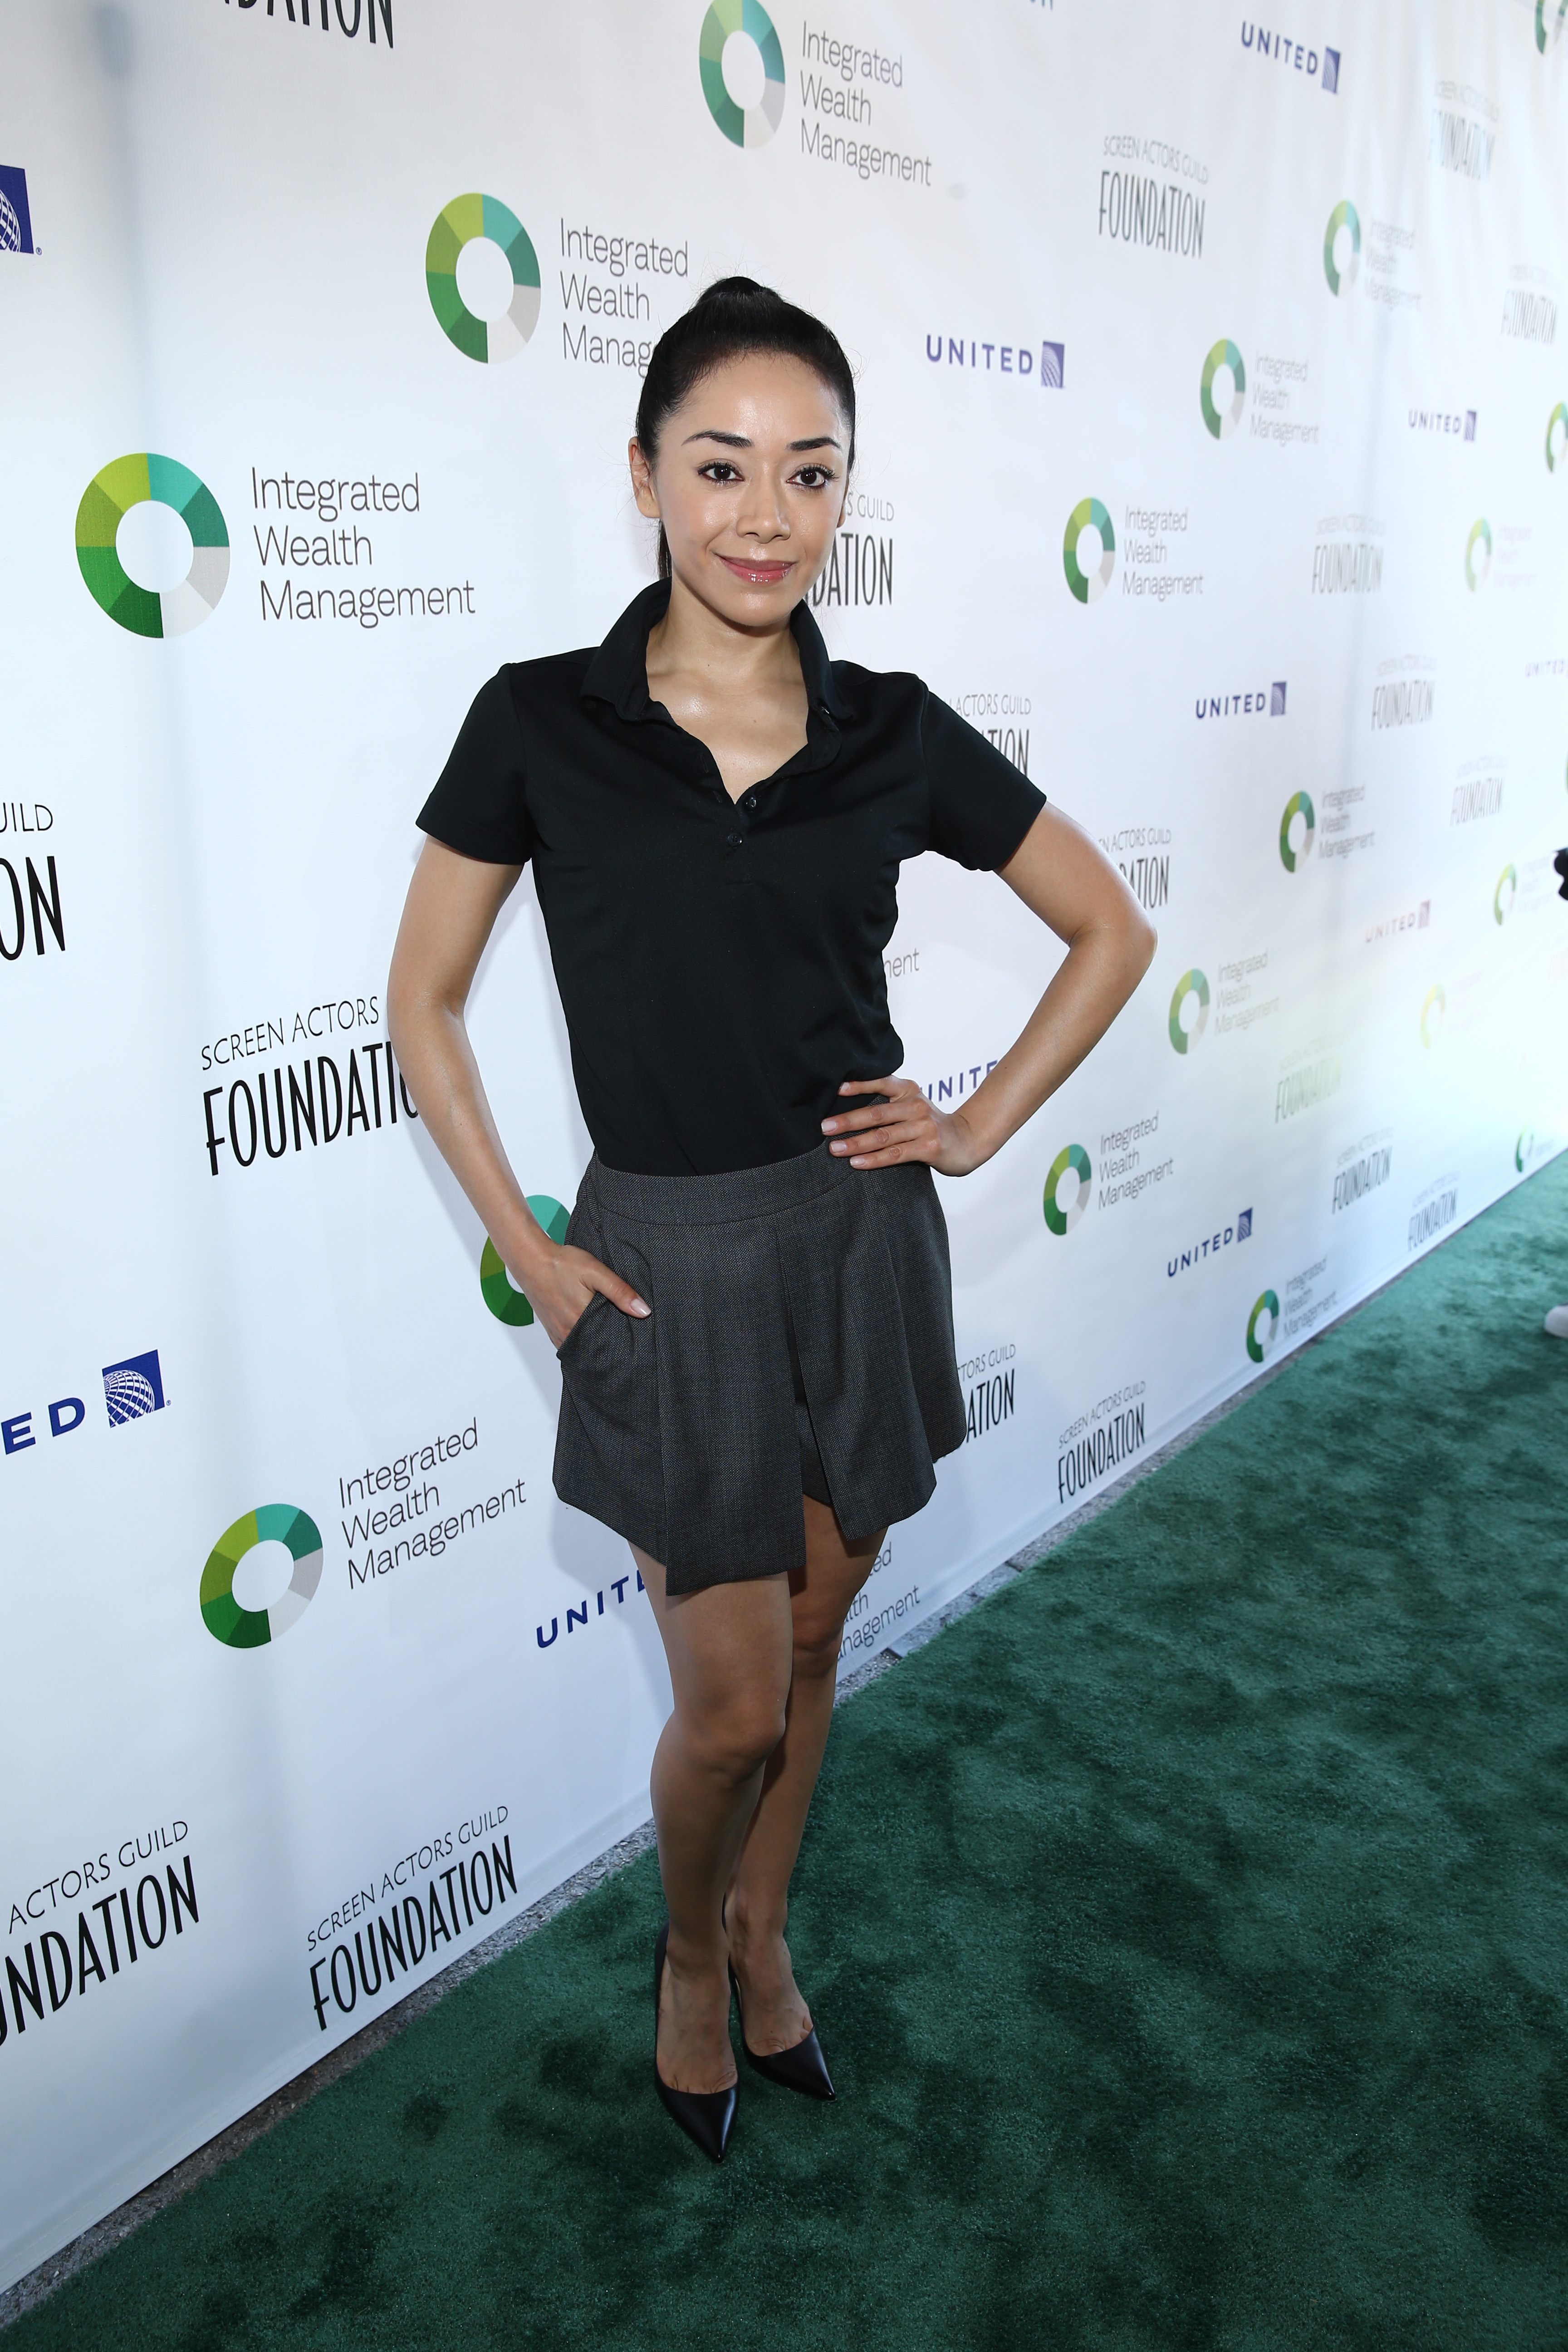 Aimee Garcia attends The Screen Actors Guild Foundation's 6th Annual Los Angeles Golf Classic on June 8, 2015 in Burbank, California. (Photo by Jason Kempin/Getty Images for The Screen Actors Guild Foundation)